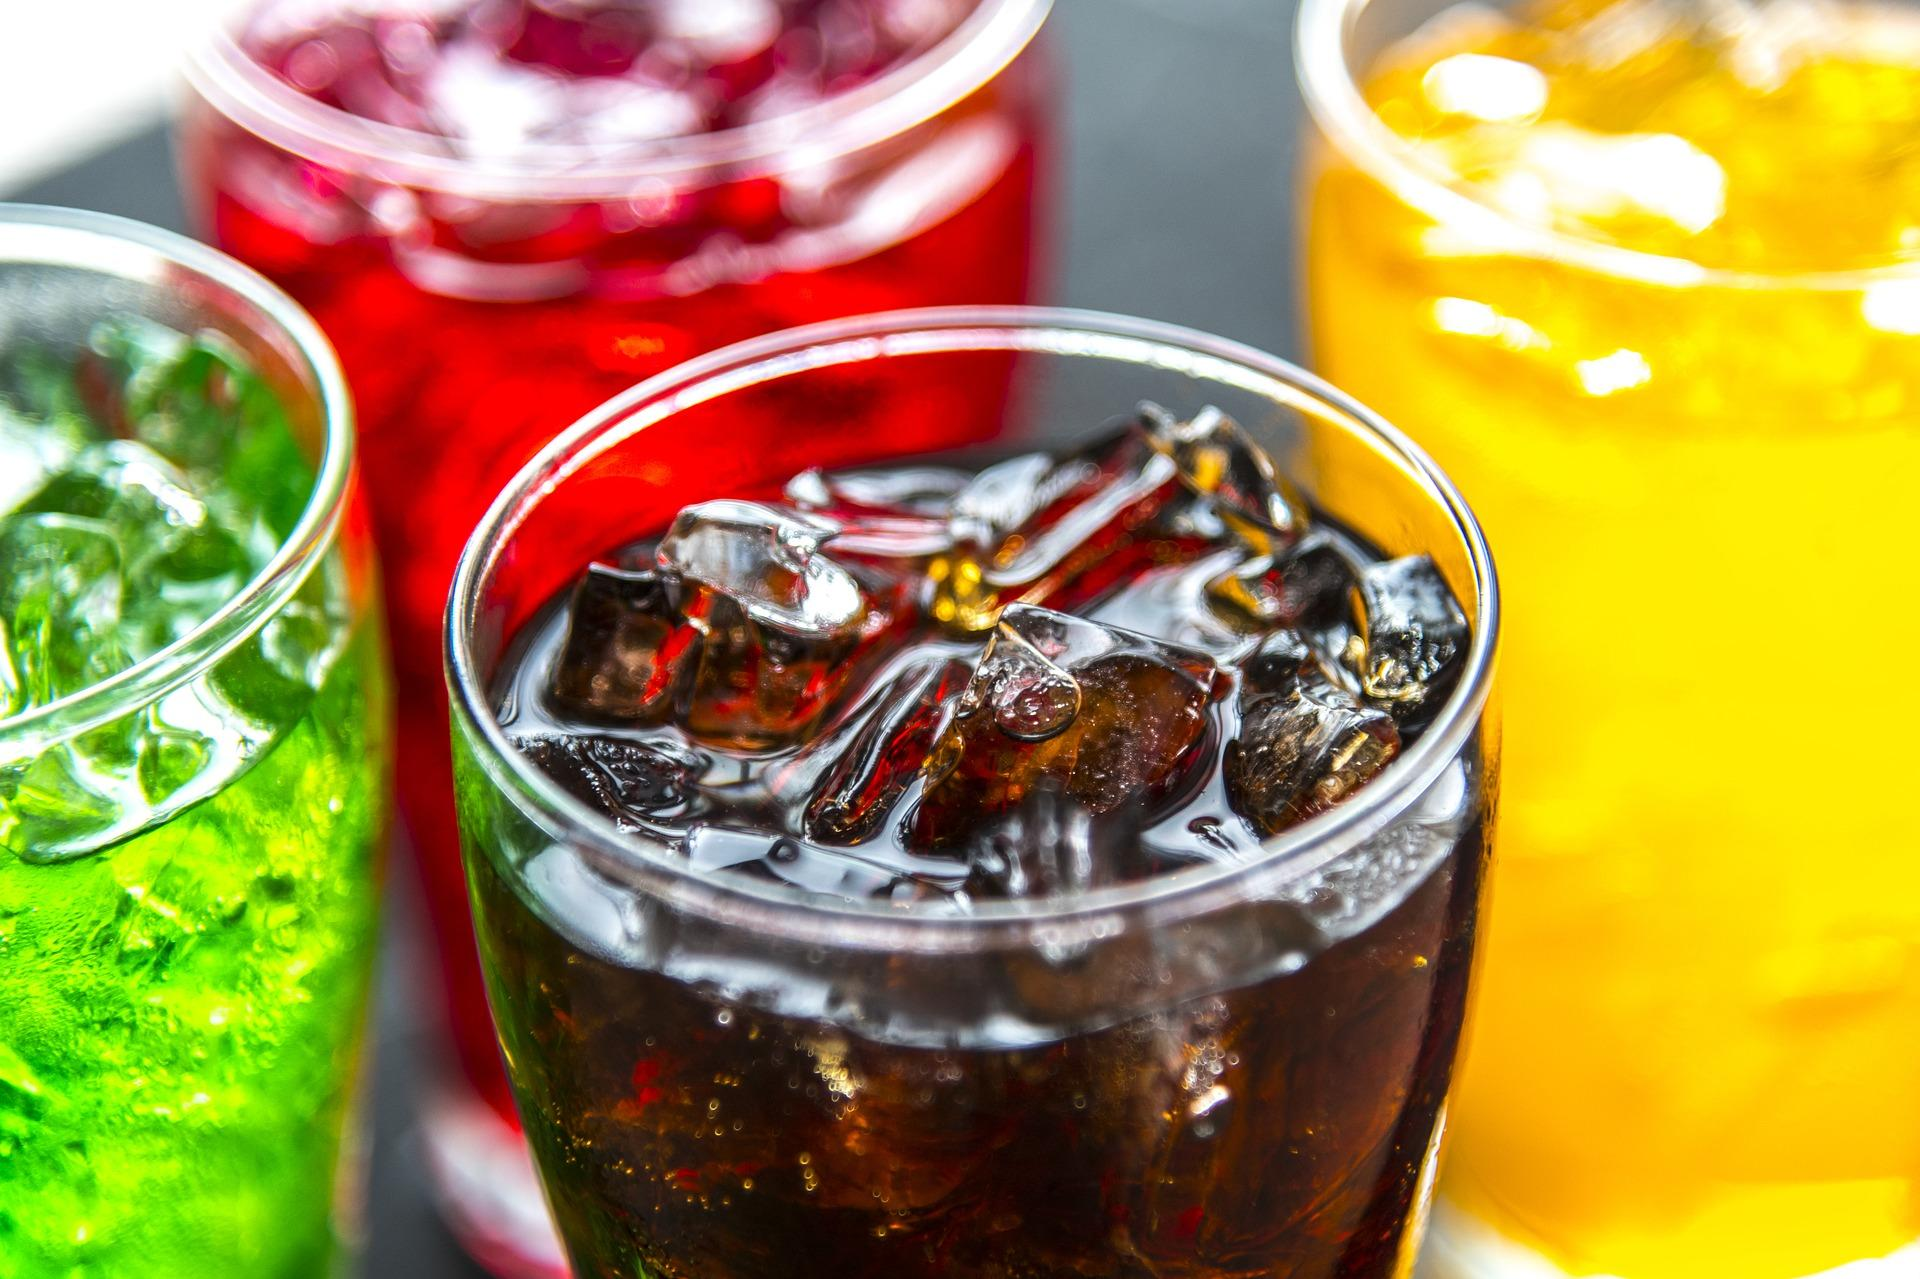 Soda Linked To Higher Results In Early Deaths, Study Suggests